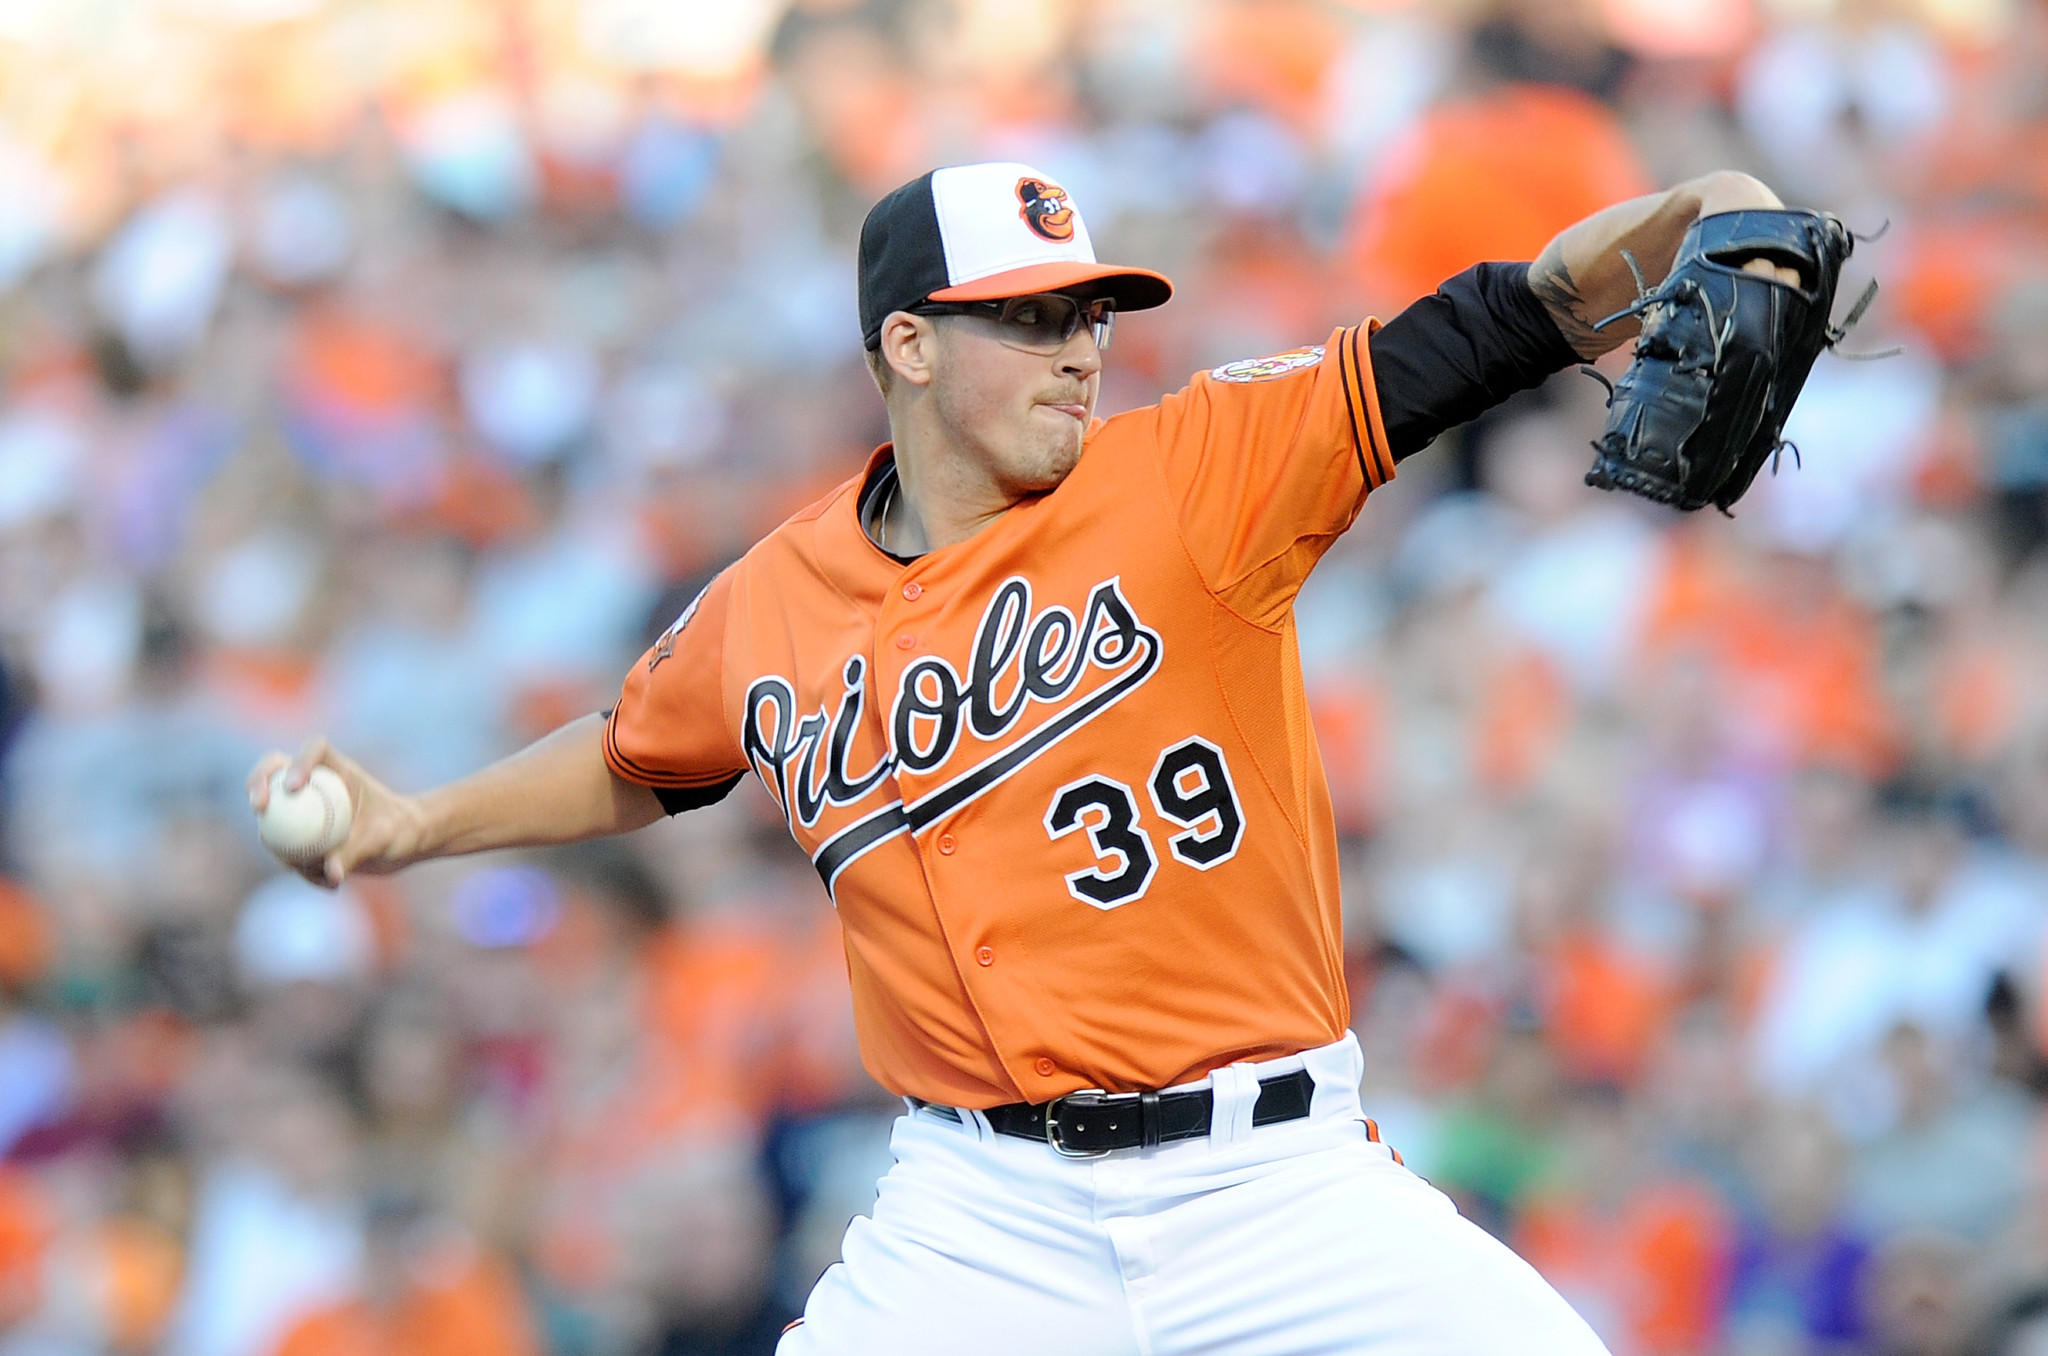 The Orioles' Kevin Gausman won his first major league game as a starter Saturday night.